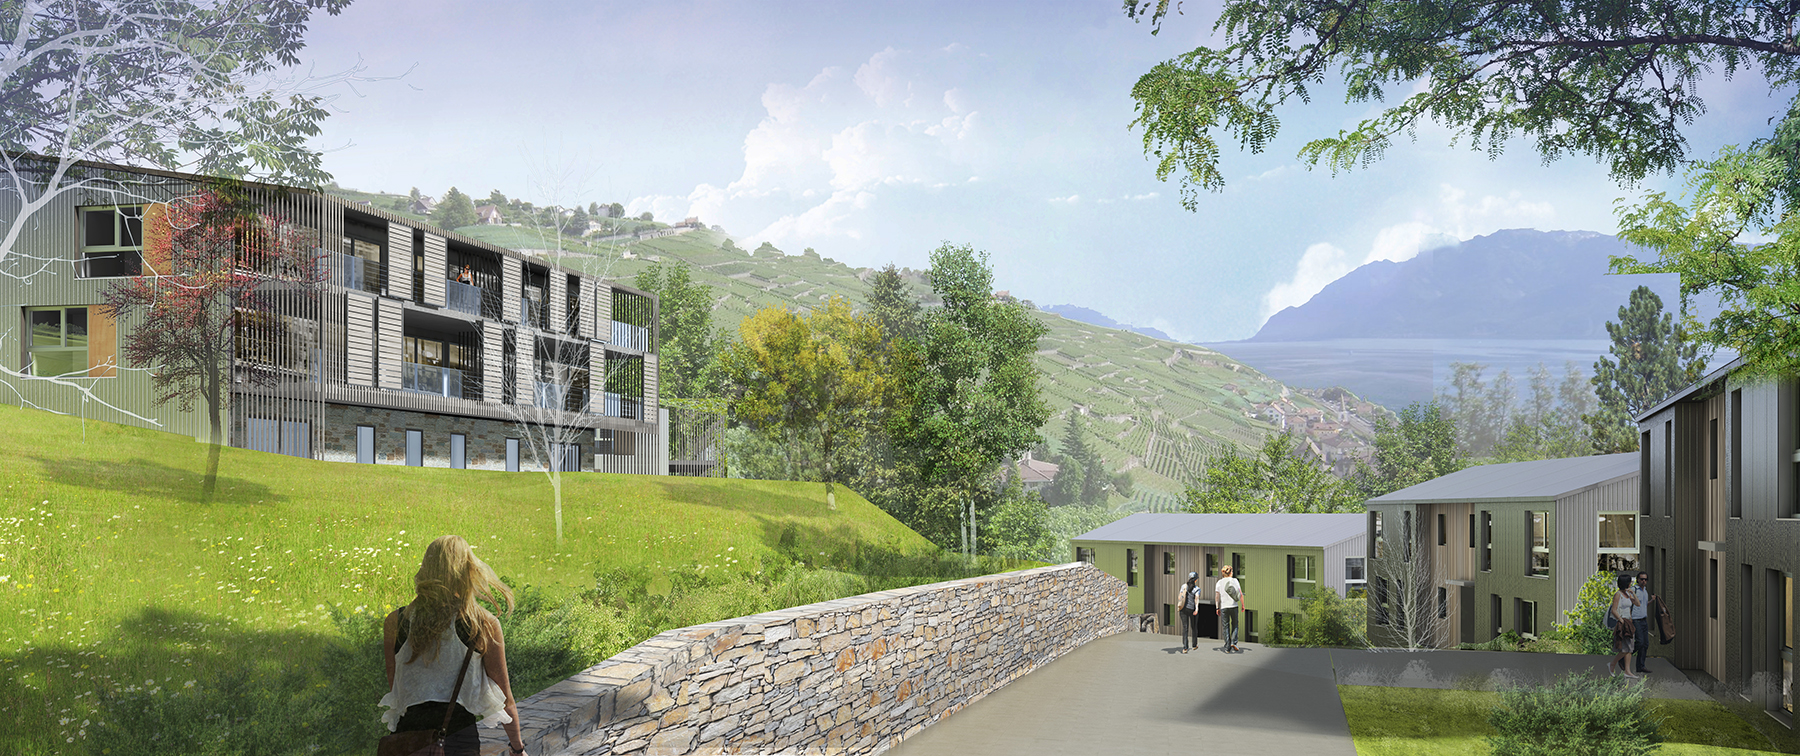 INTERSENS - AAG+ - Logements étudiants - Lutry (Suisse)